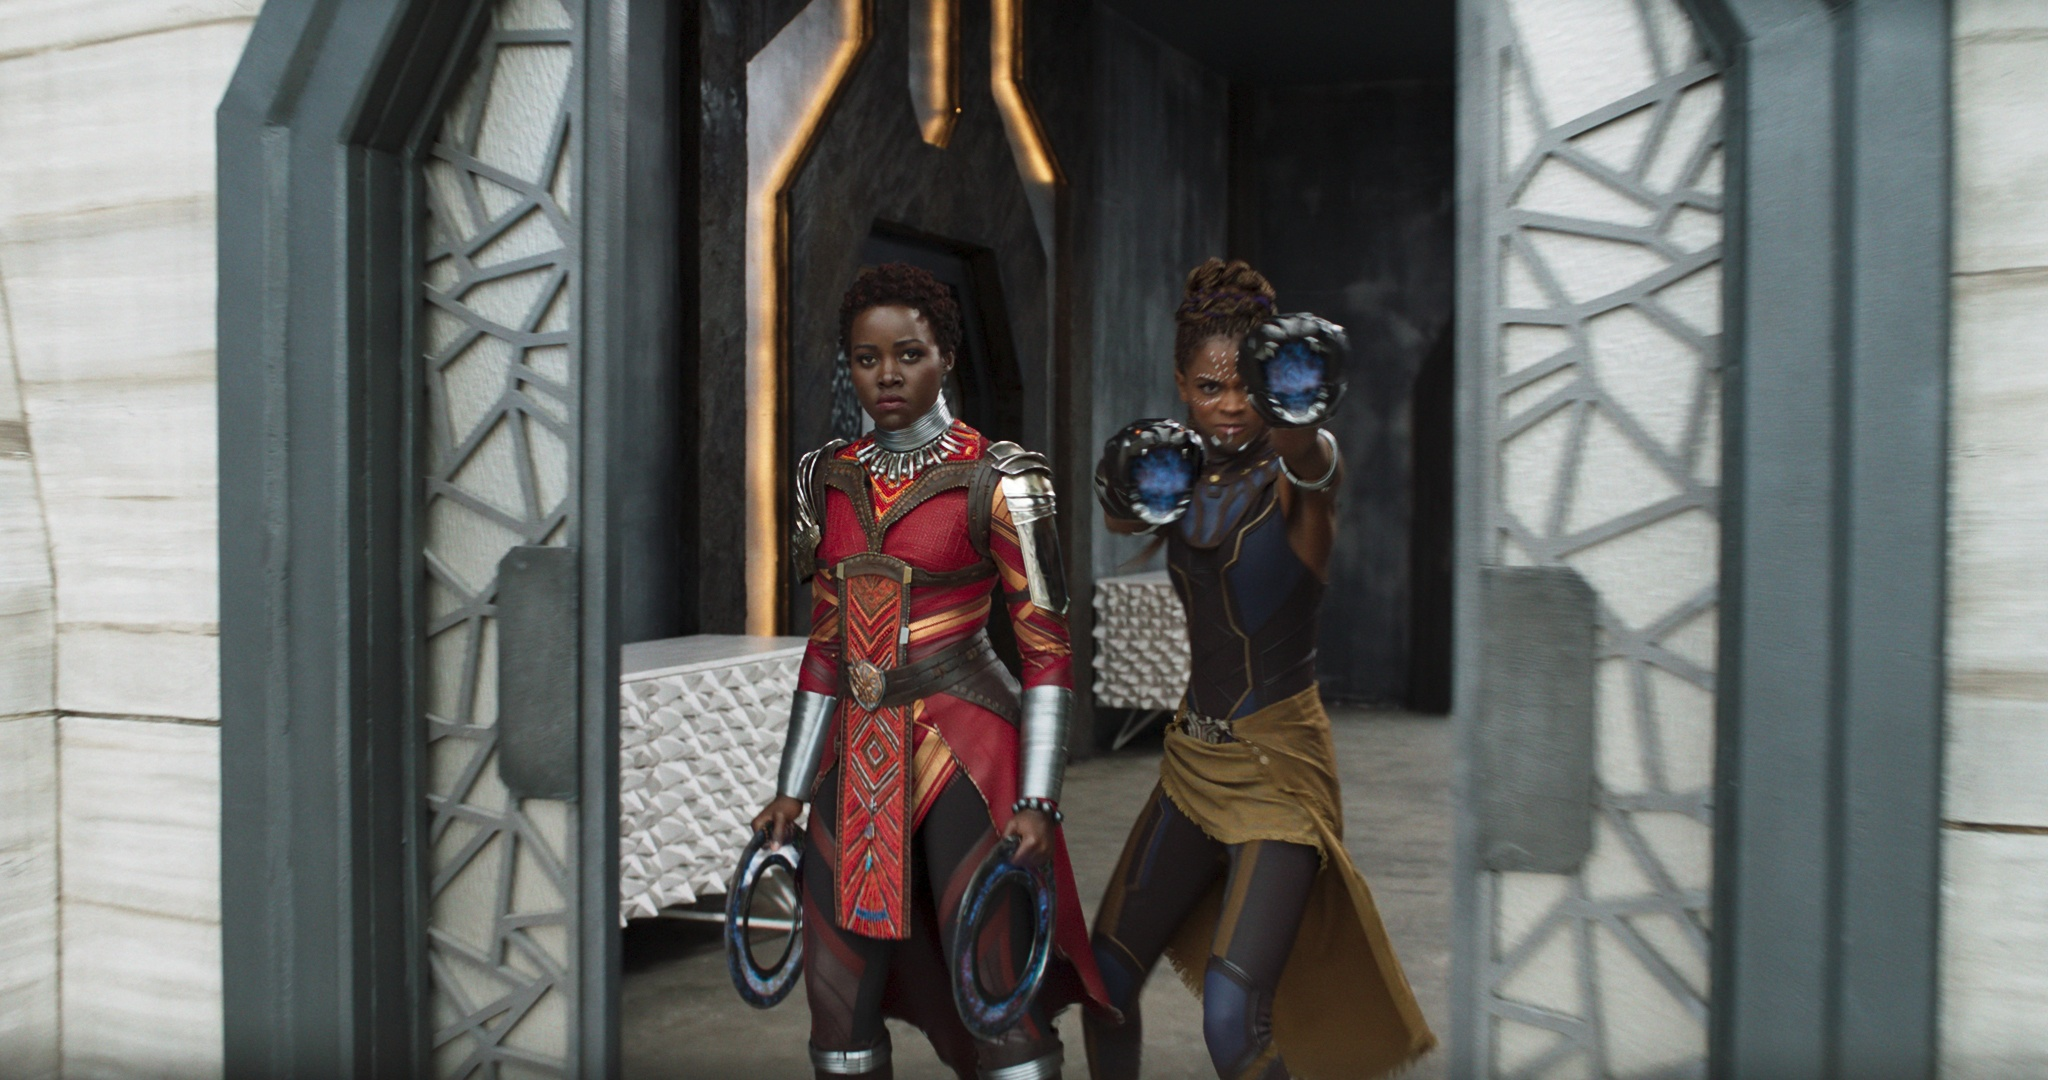 Lupita Nyong's Nakia stands tot he left of Letita Wright's Sure while holding weapons in Black Panther